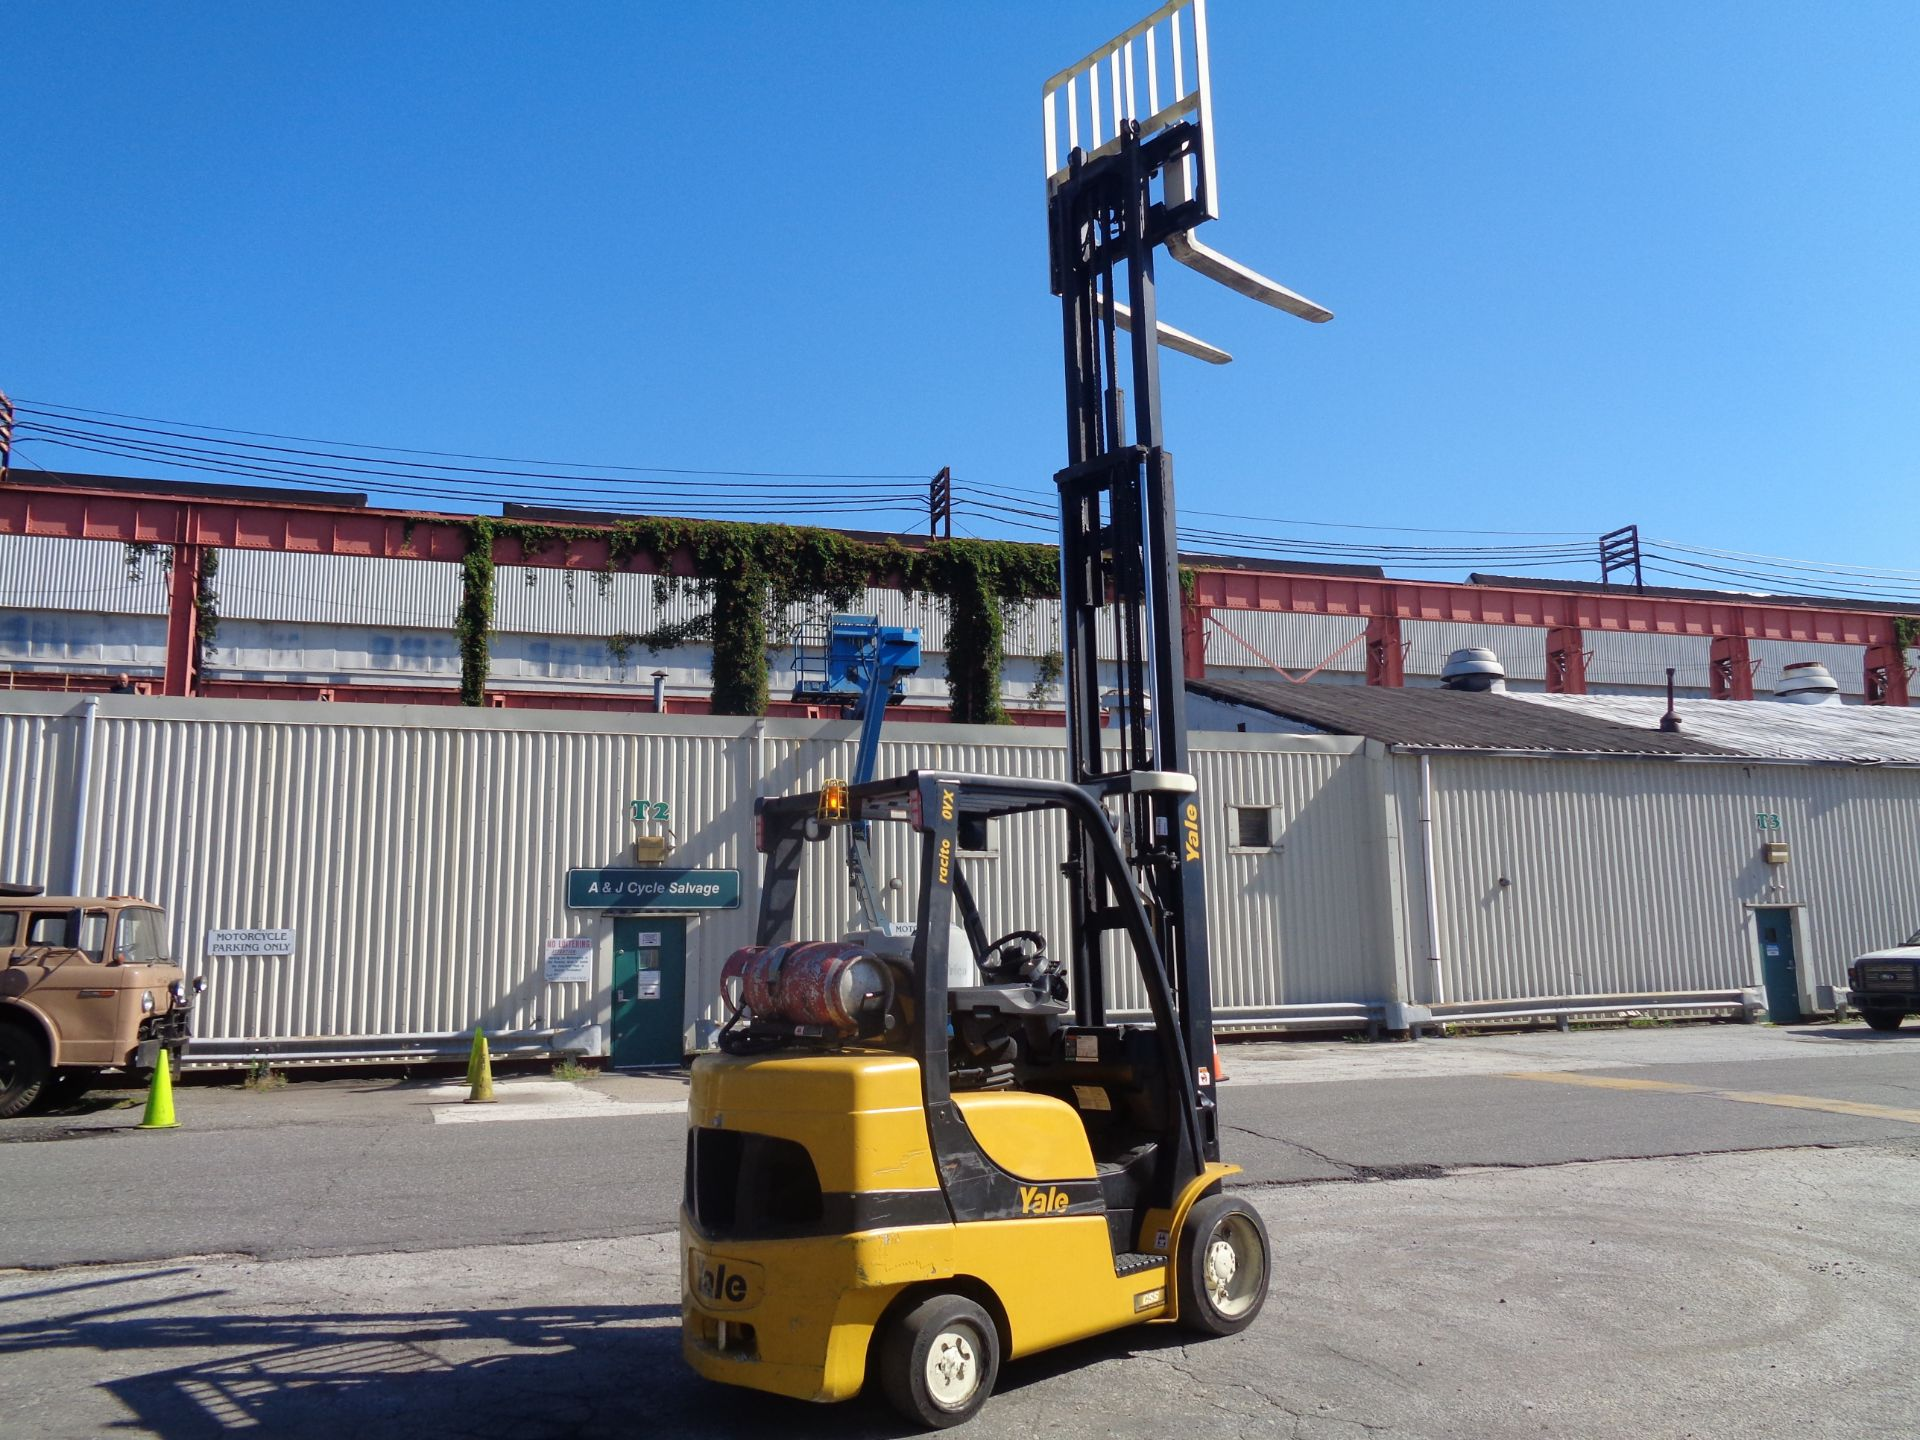 2014 Yale GLC070VXNGSE088 7,000 lbs Forklift - Image 9 of 12